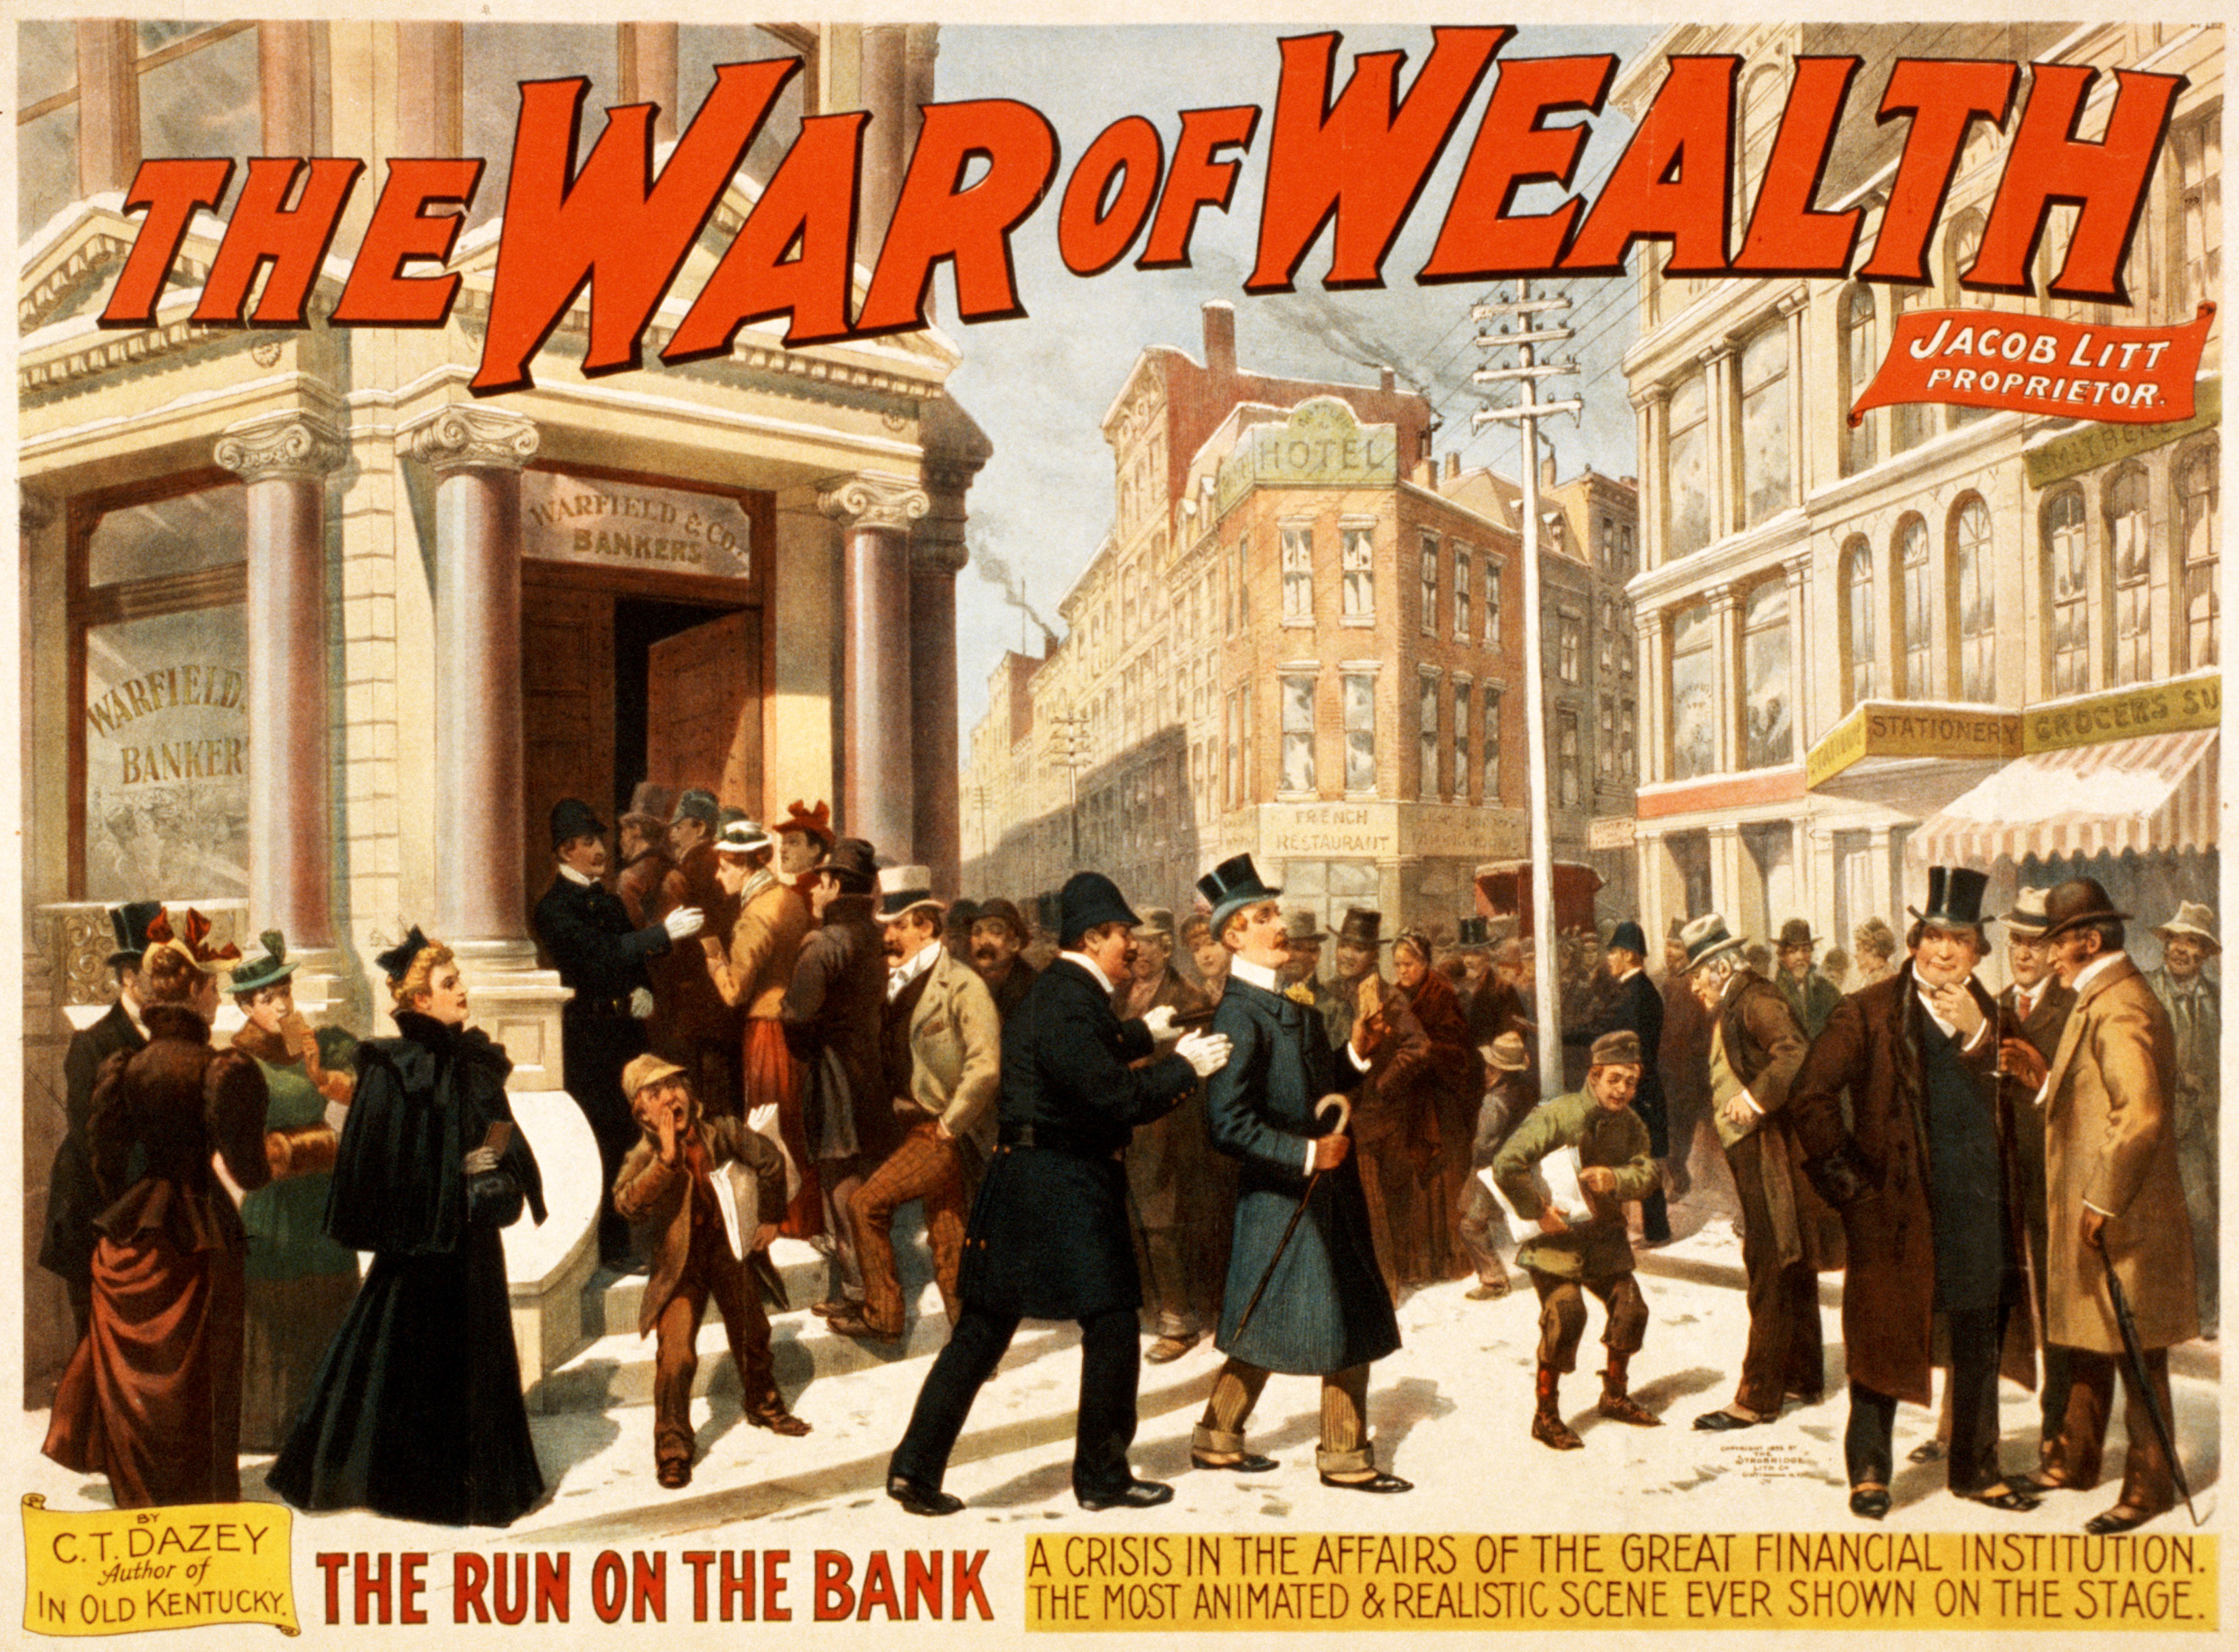 War_of_wealth_bank_run_poster